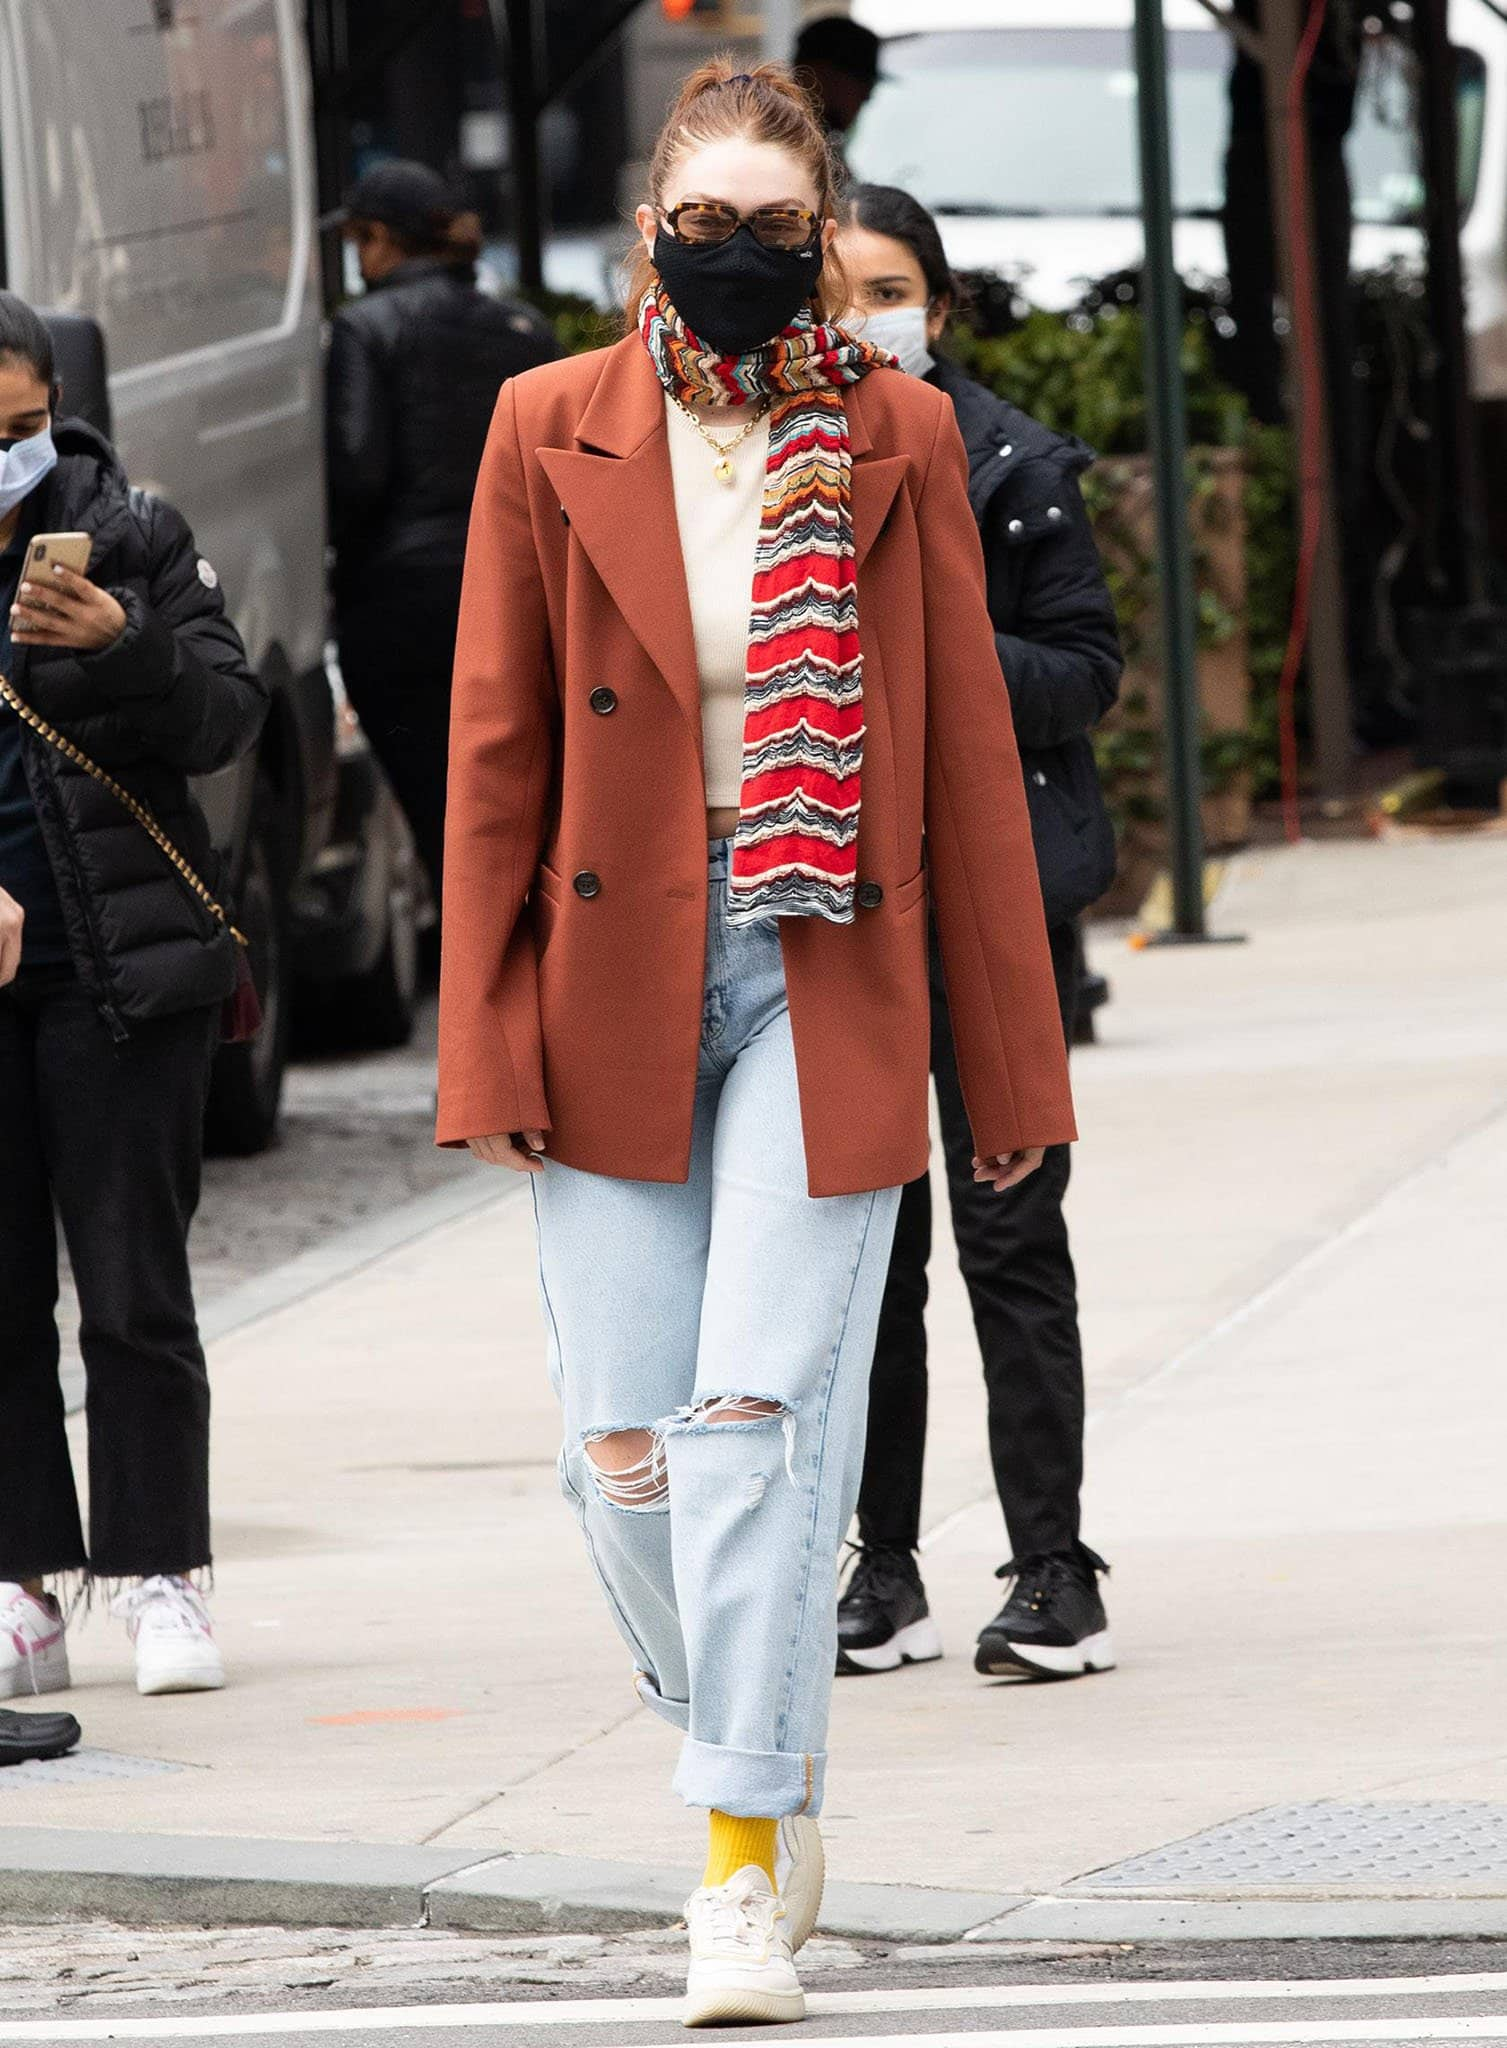 Gigi Hadid adds more color to her chic look with a striped scarf and a pair of Petals and Peacocks yellow socks